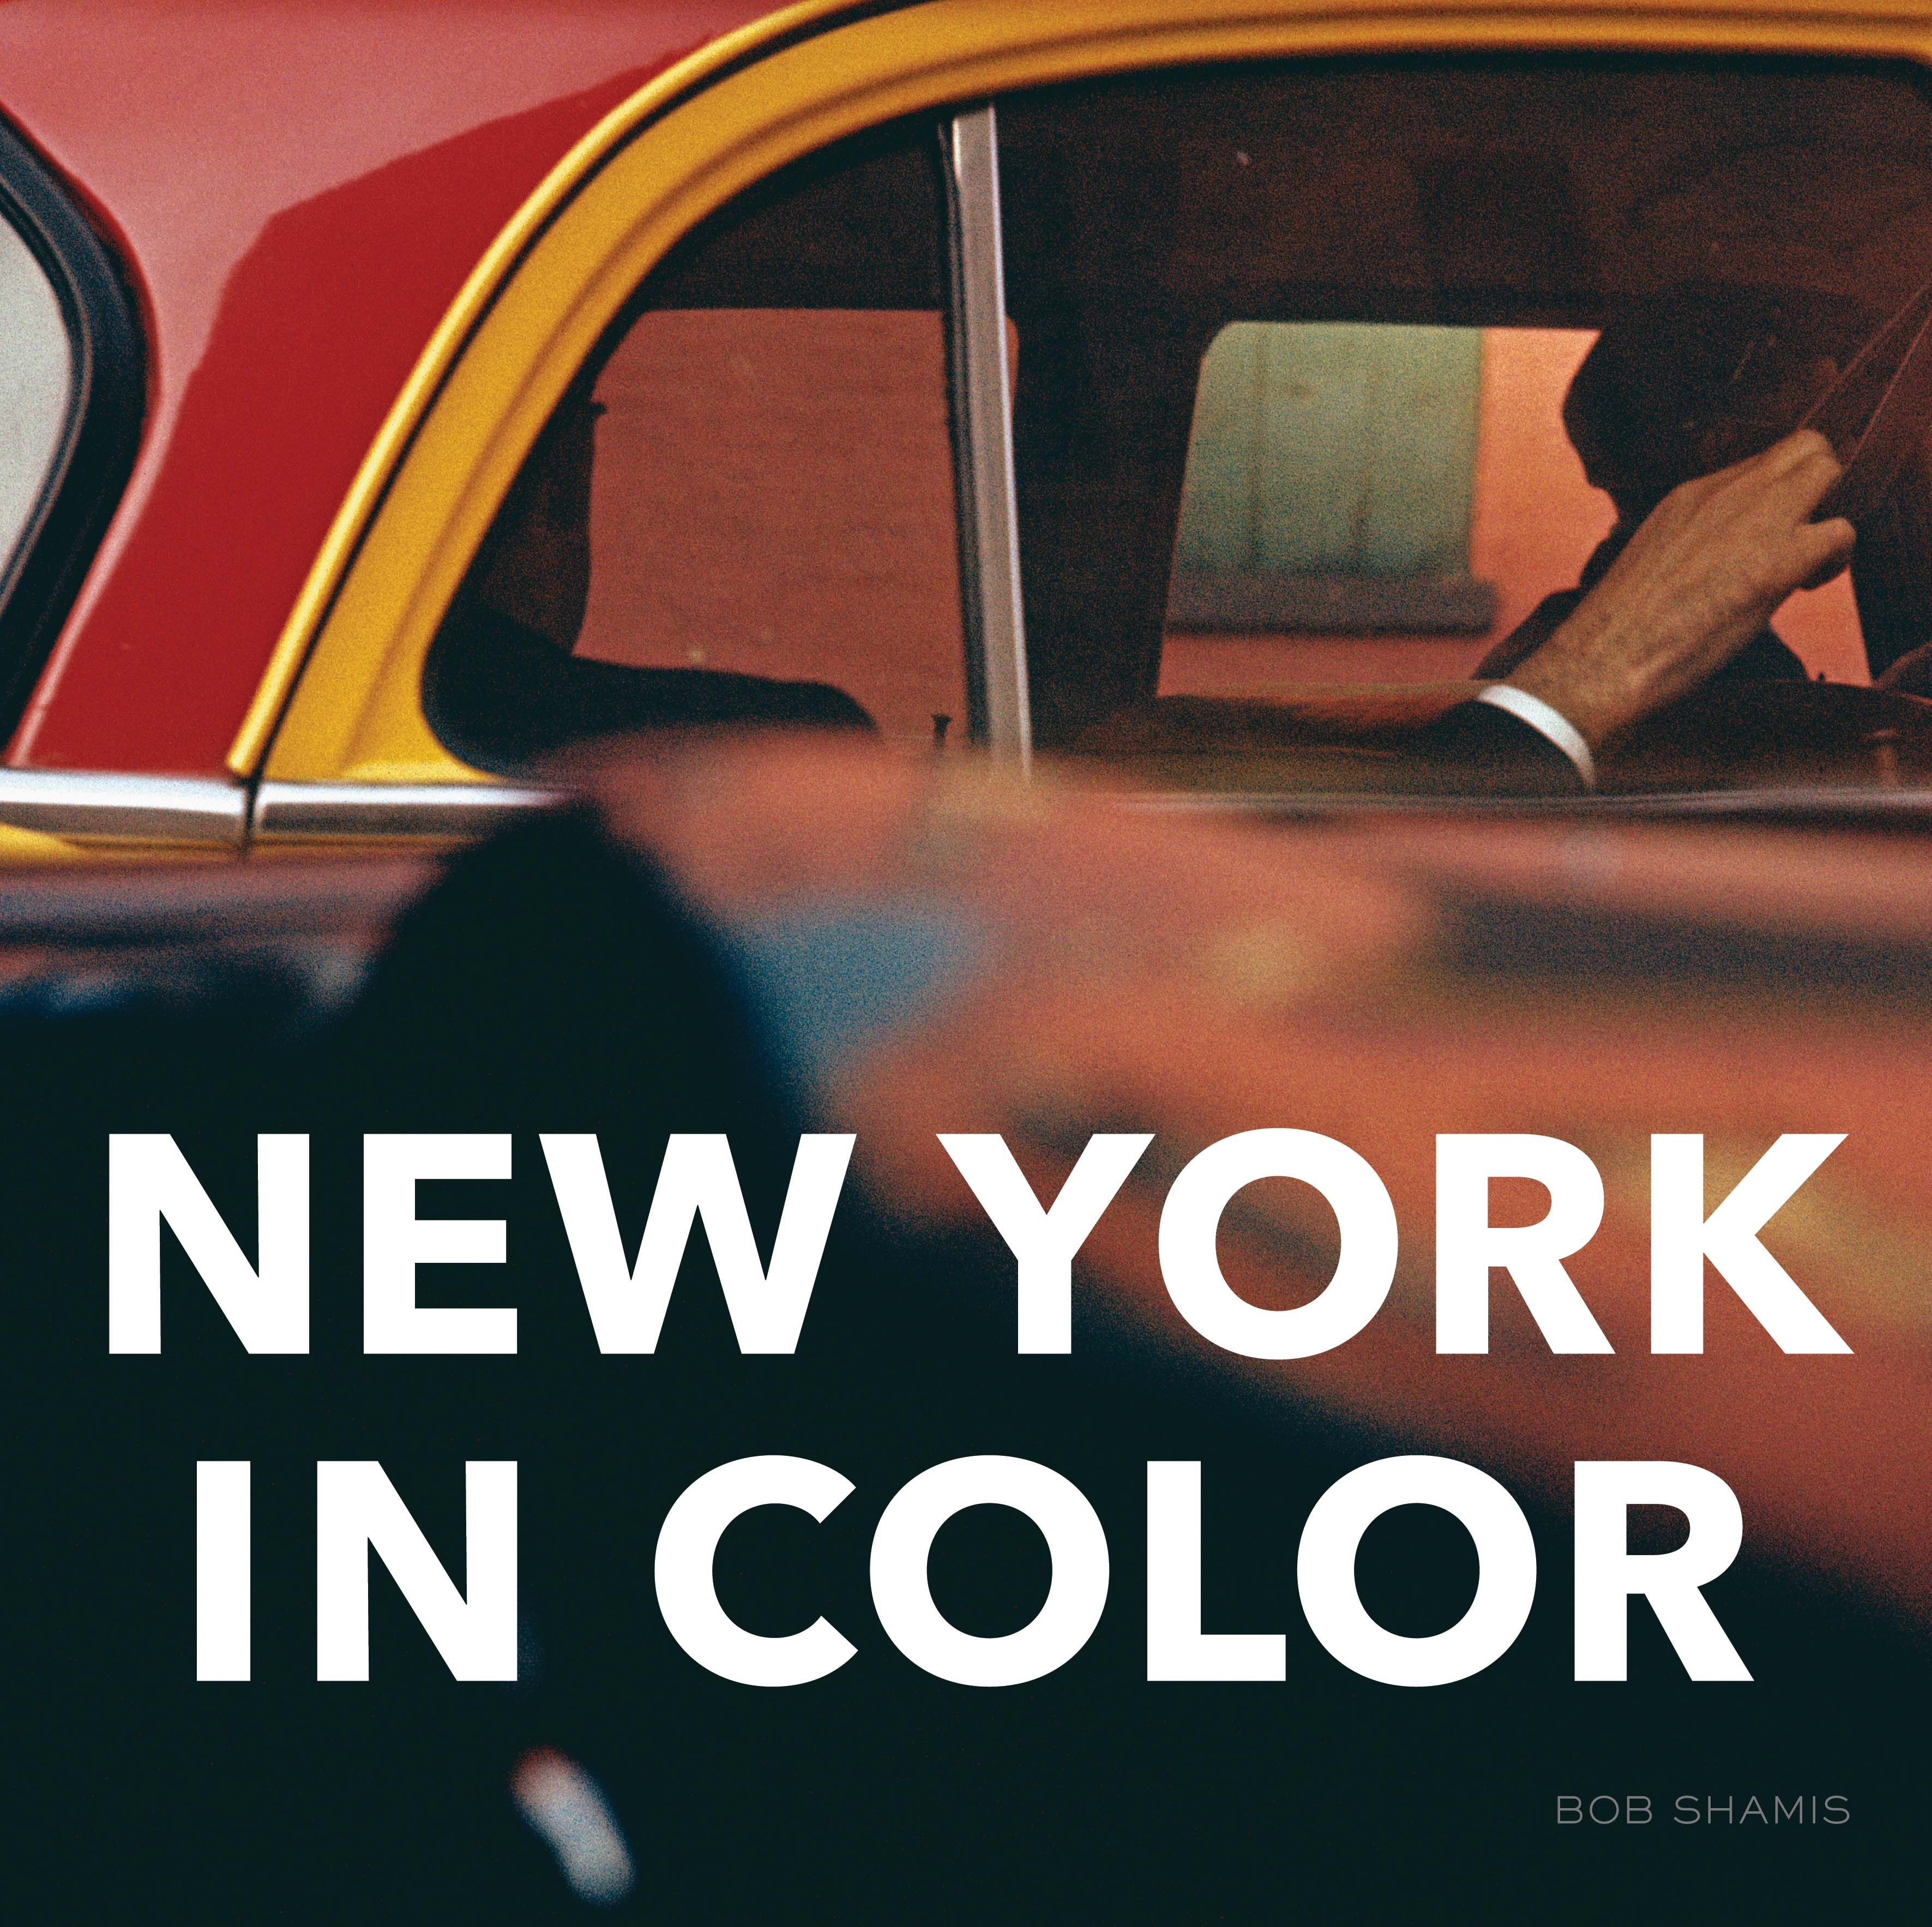 New york in color by bob shamis my library picture books for a gorgeous new coffee table book of iconic shots of new york by bob shamis geotapseo Image collections